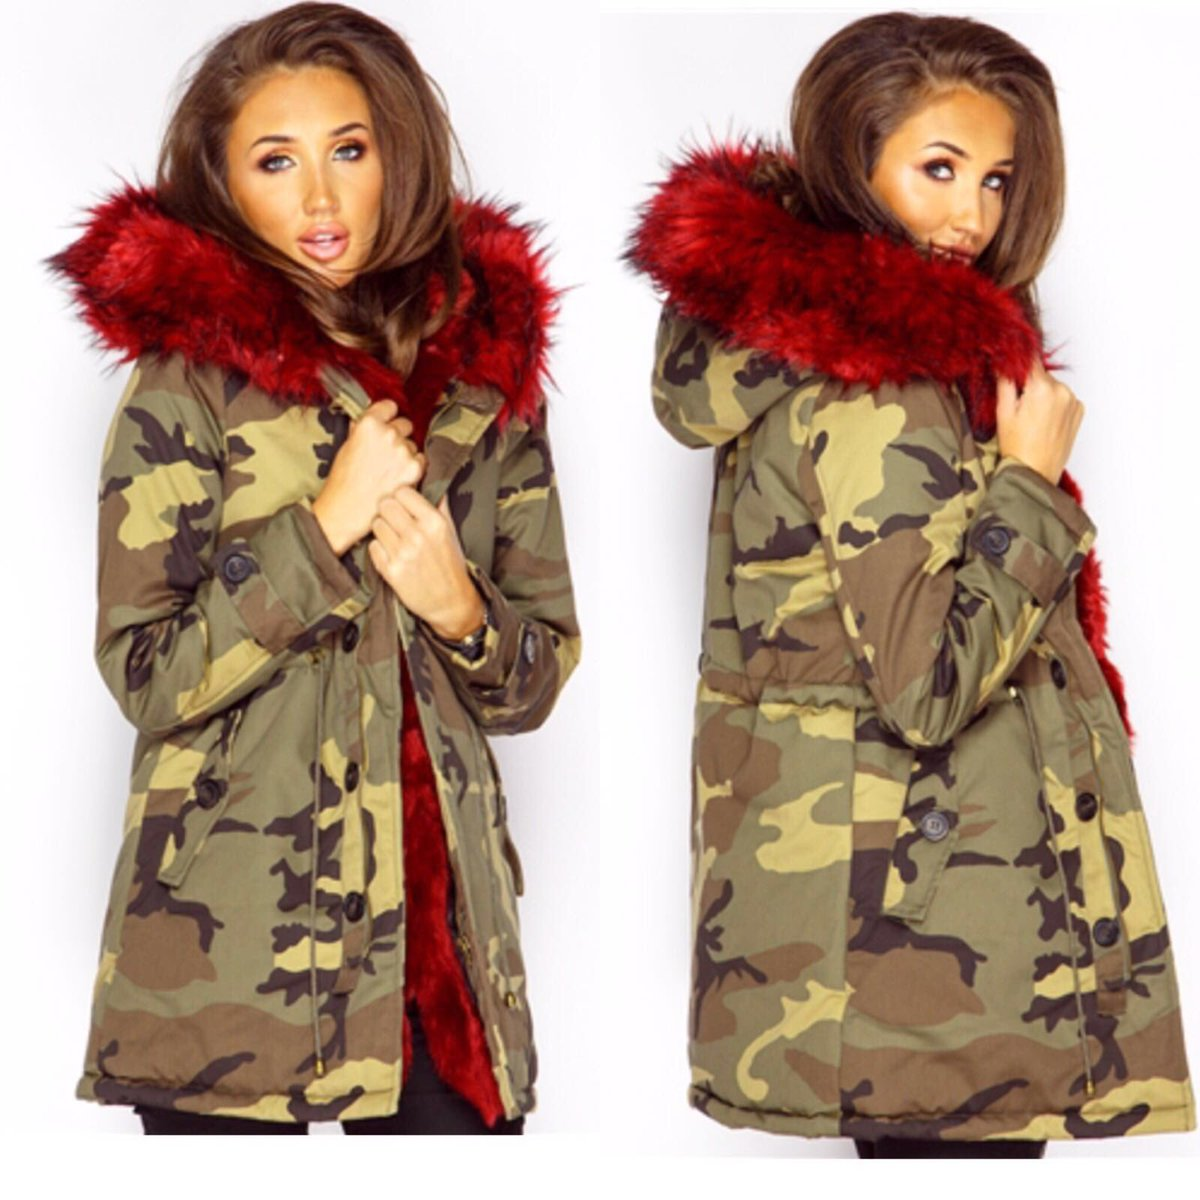 a9b66aab0d450 ... they sell out again! http://www.misspap.co.uk/cadence-khaki-red-camo -faux-fur-coat.aspx?gclid=CMnBtIDCls8CFWEq0wodT_0AnA  …pic.twitter.com/rWoEuCcWII